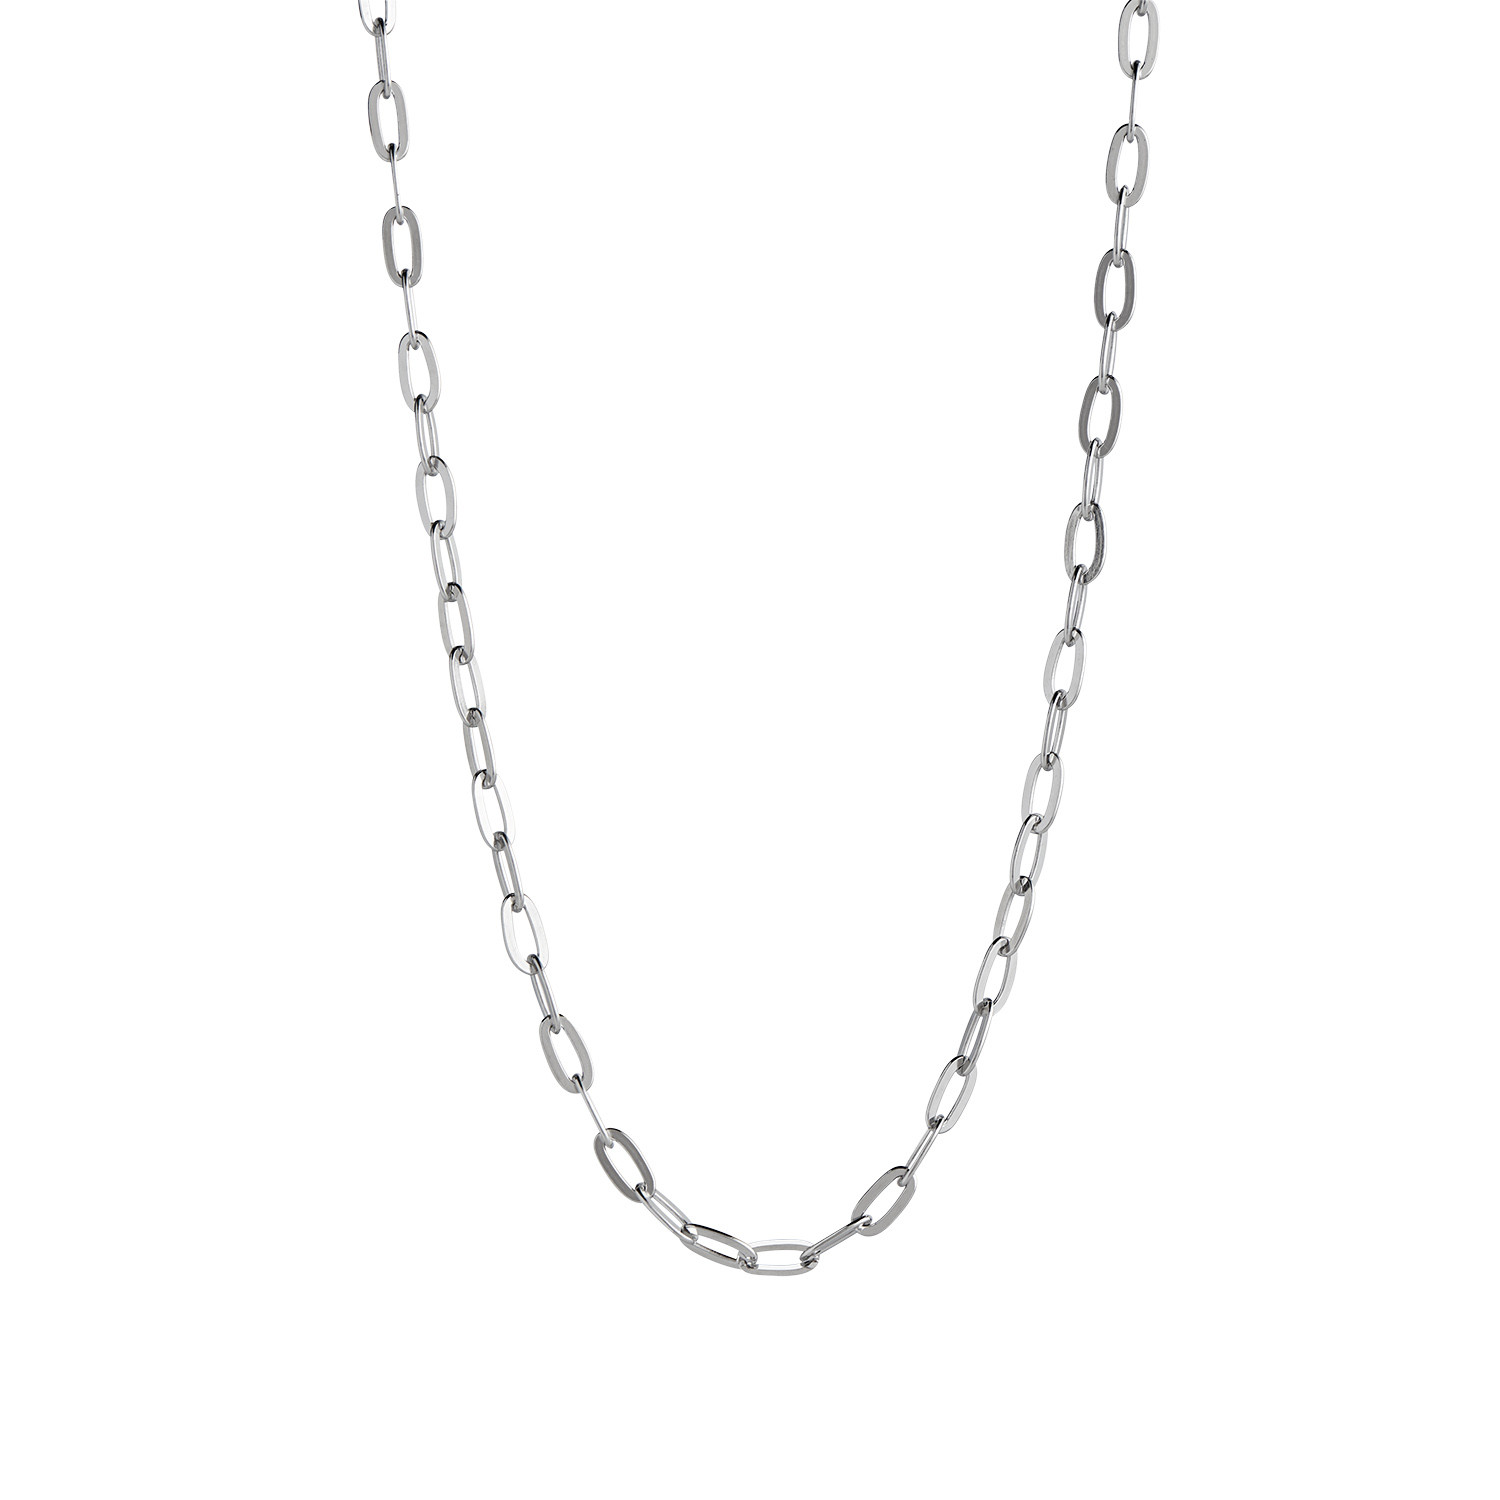 Big Chunky Pendant Chain Silver